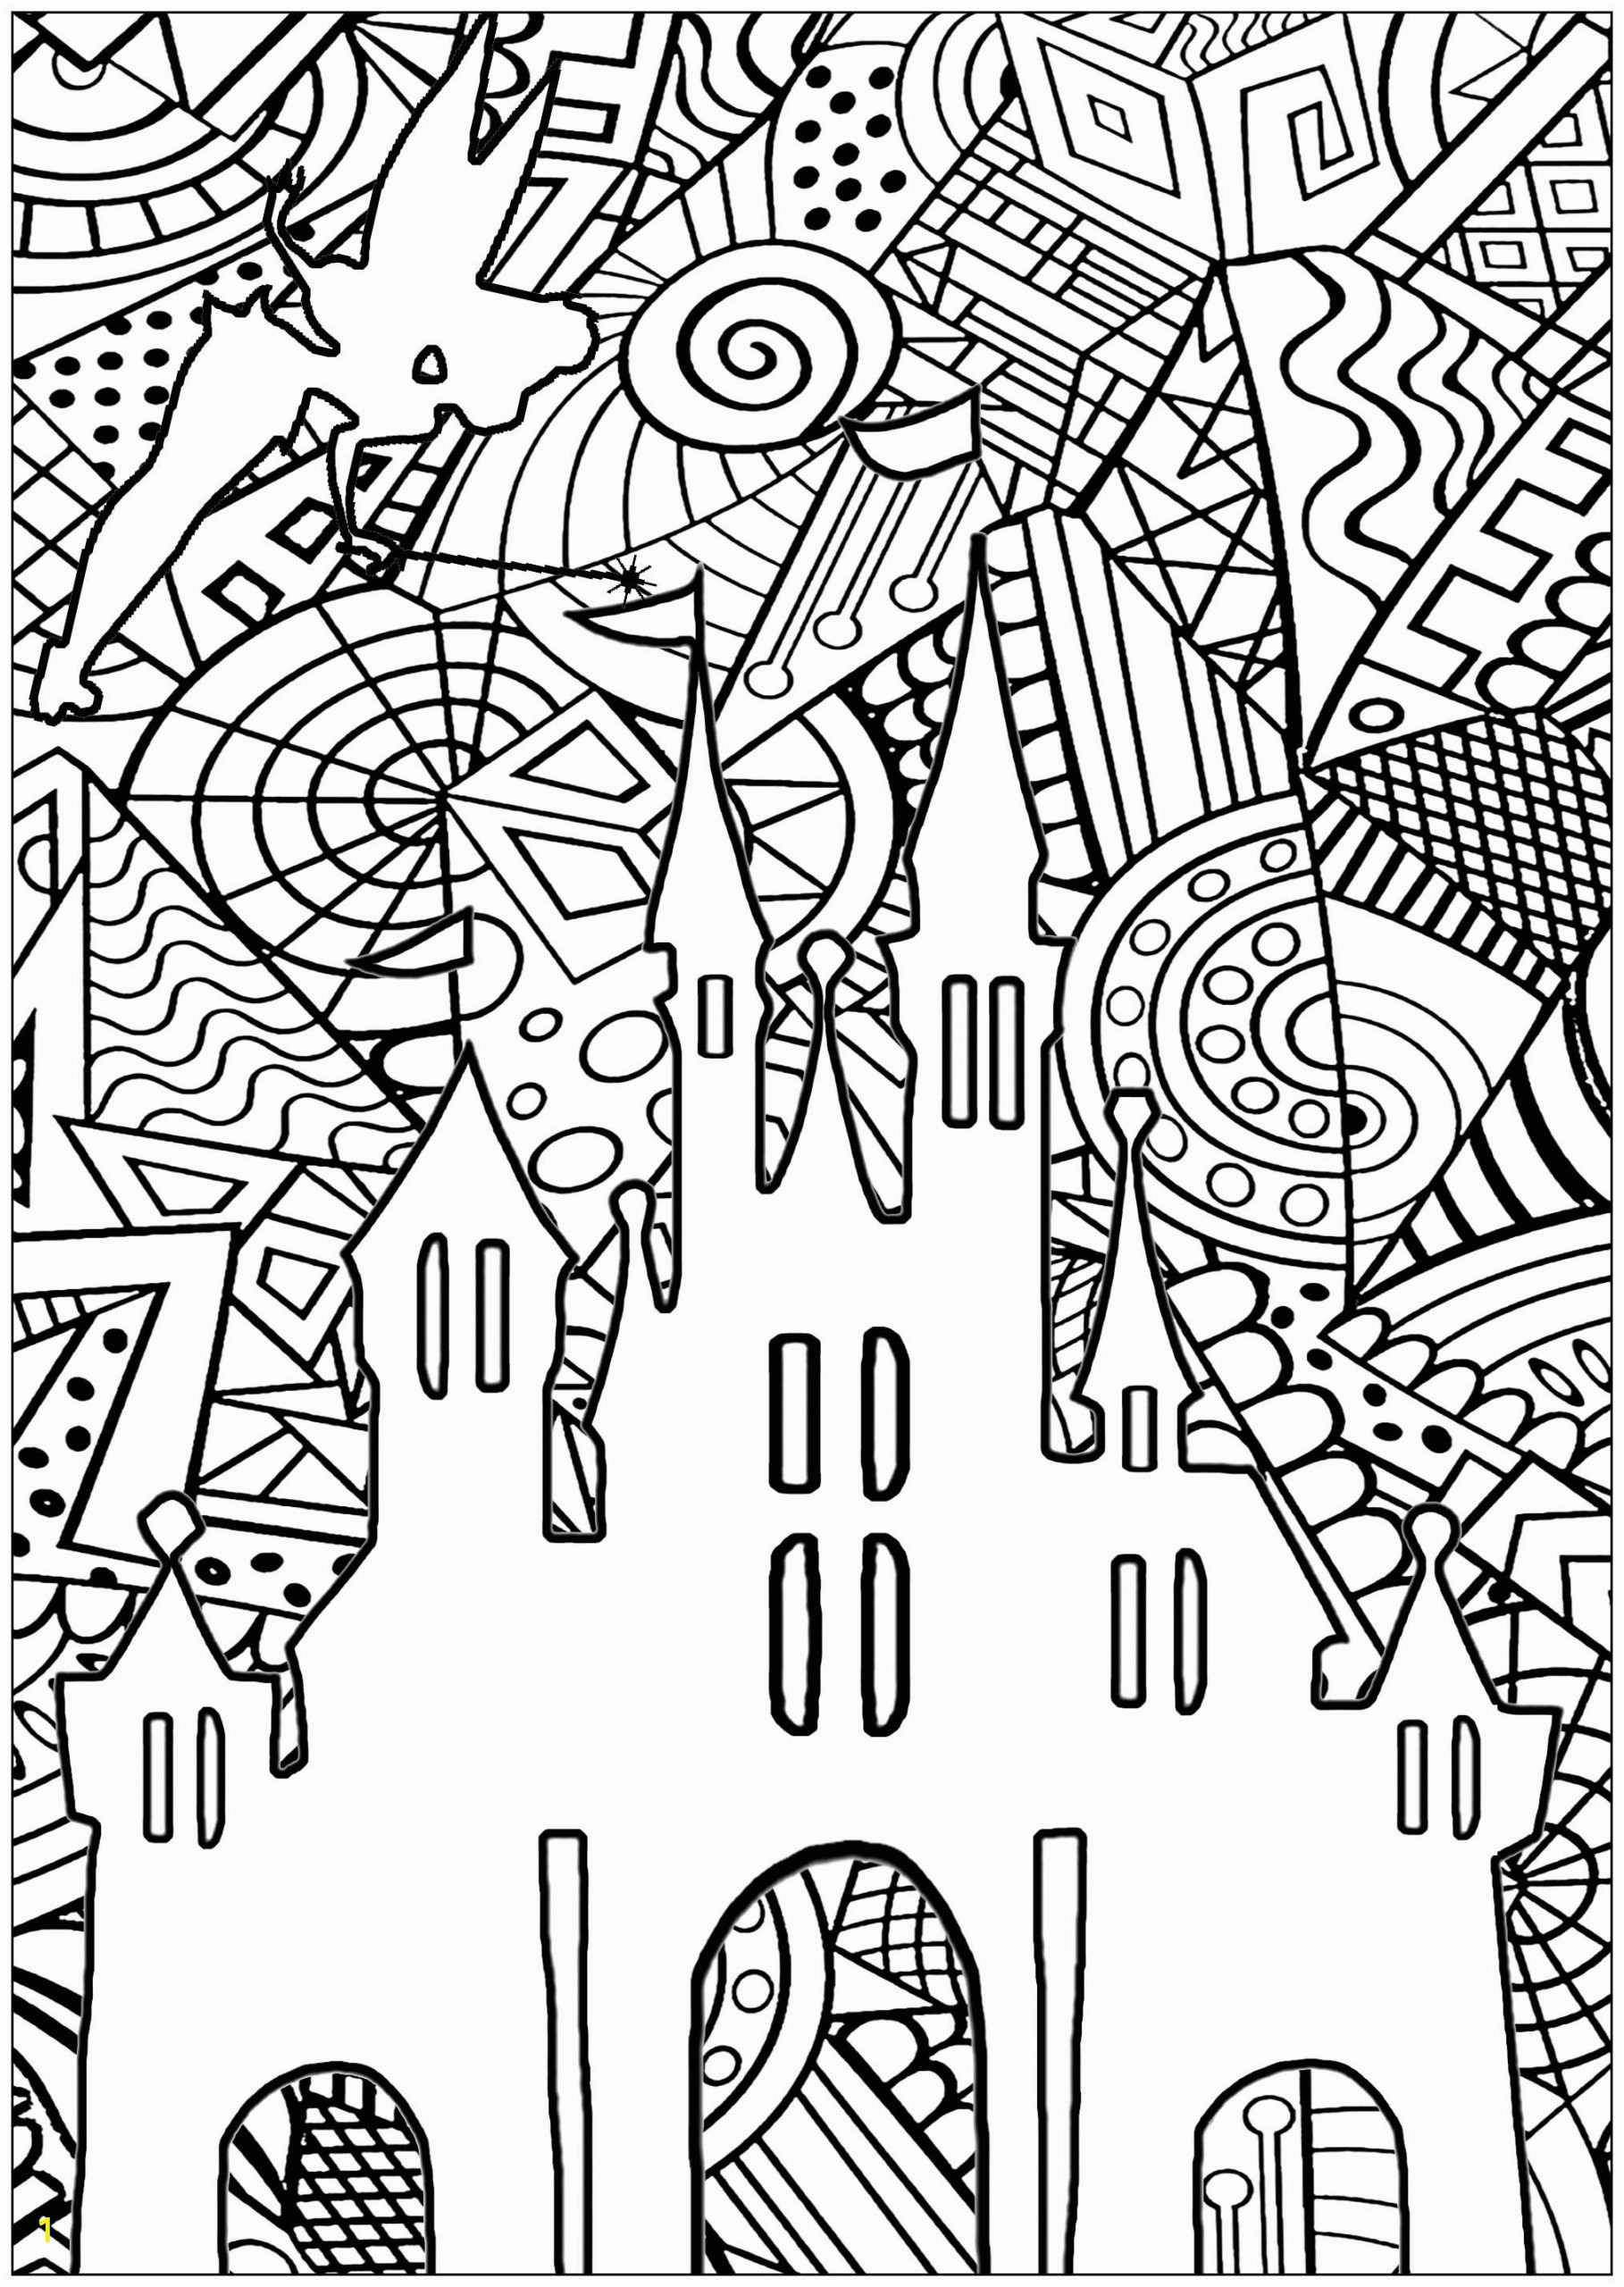 disney coloring games clone trooper pages dr seuss pusheen colouring stick man nutcracker page stress reducing basketball book splatoon love christmas ornaments for adults printable scaled